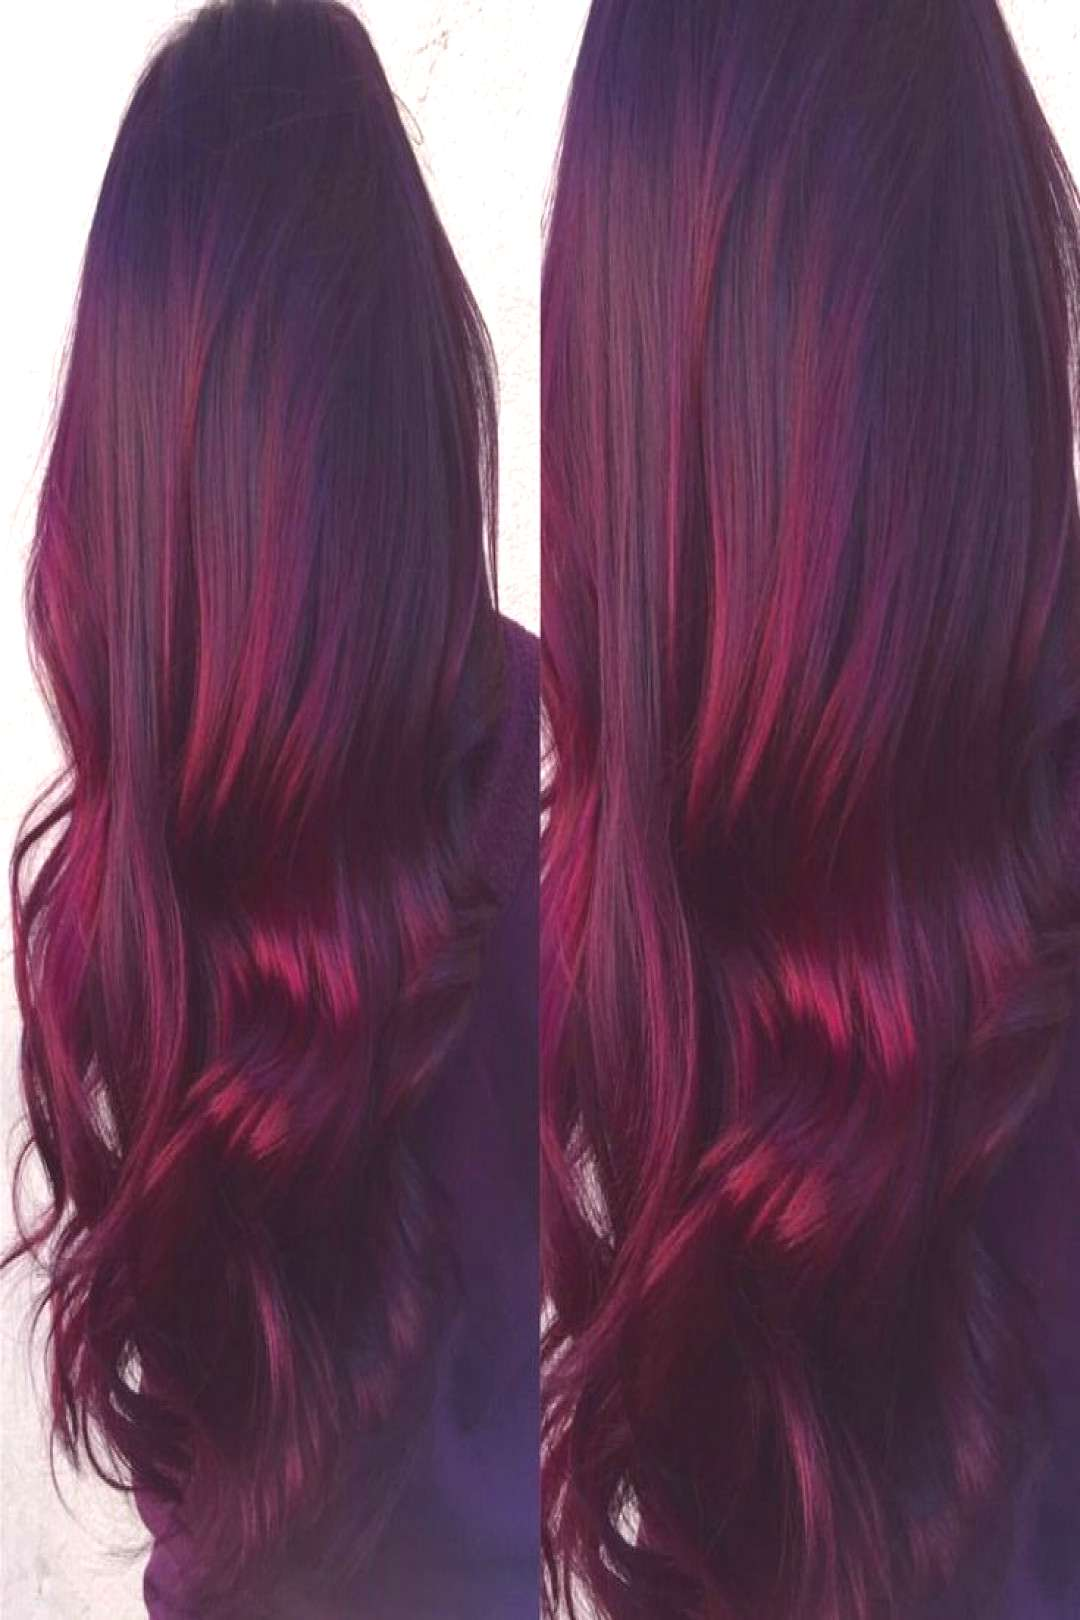 Red Velvet balayage-- dark roots with vibrant burgundy ends. Done by Renée Spinale at The Dollhous